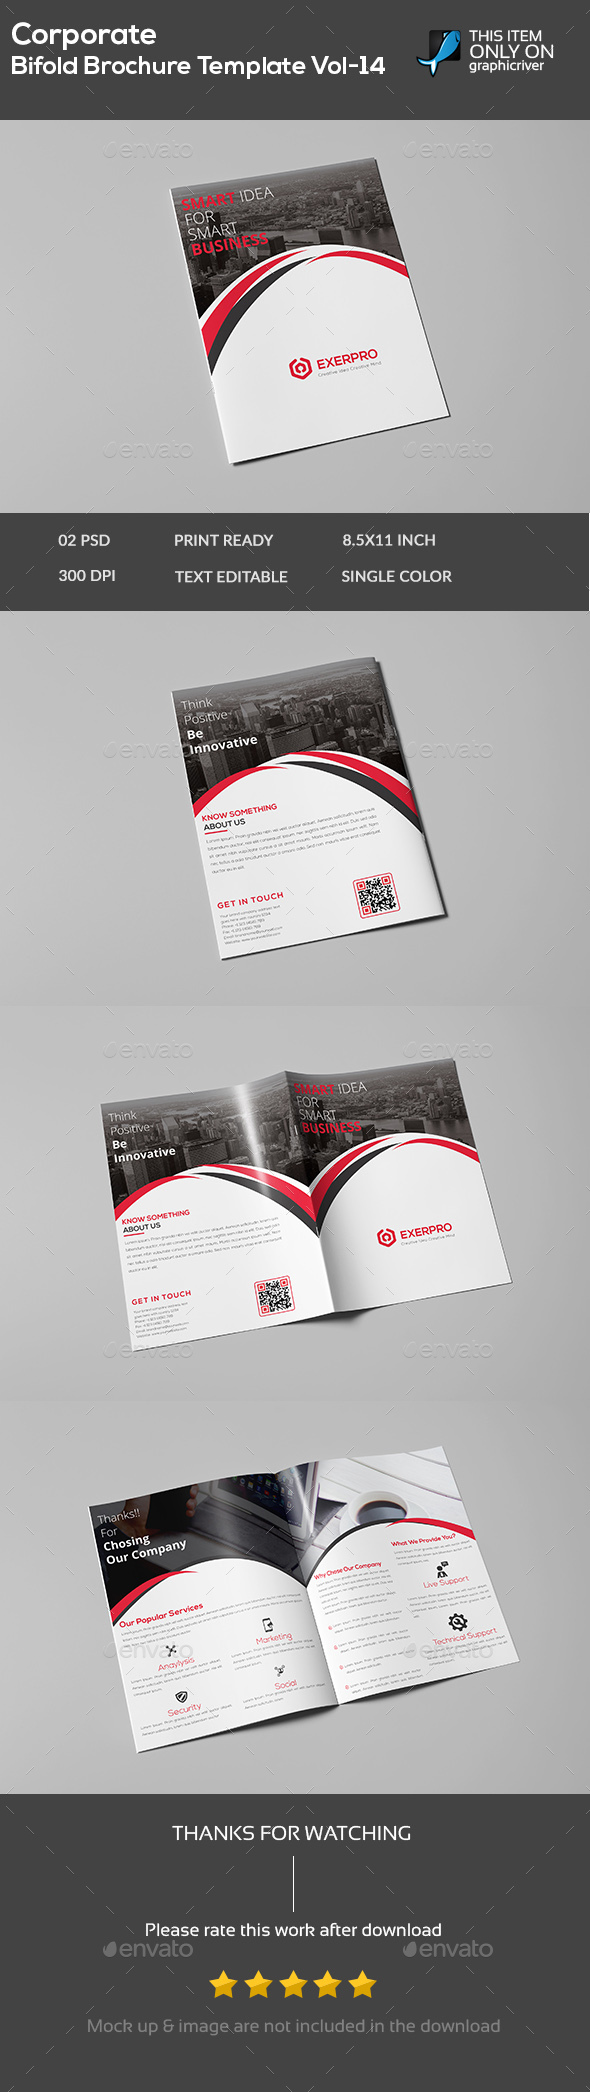 Corporate Bifold Brochure Template vol-14 - Brochures Print Templates